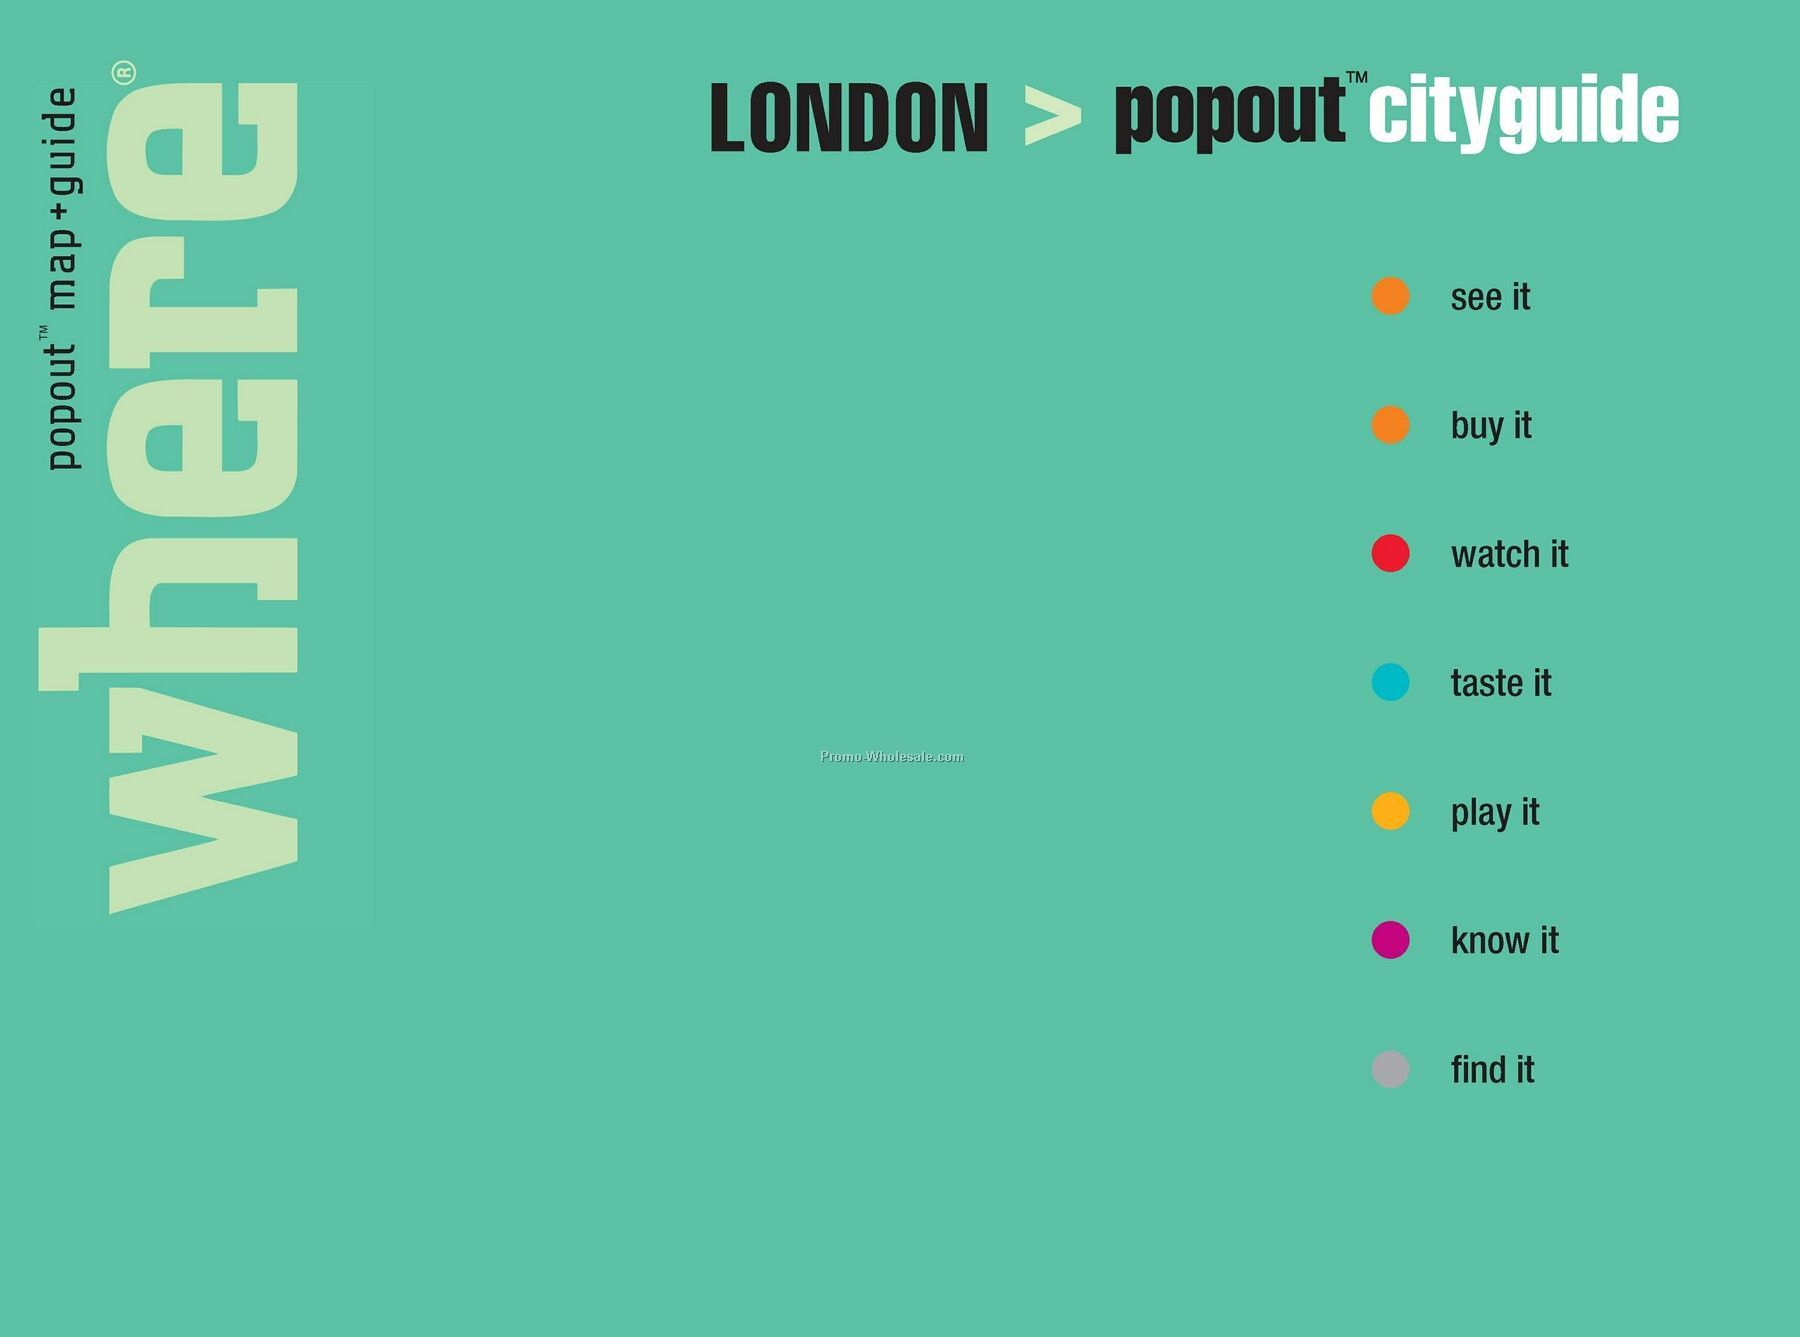 Restaurant Guides - Featuring Popout Maps - City Guide London